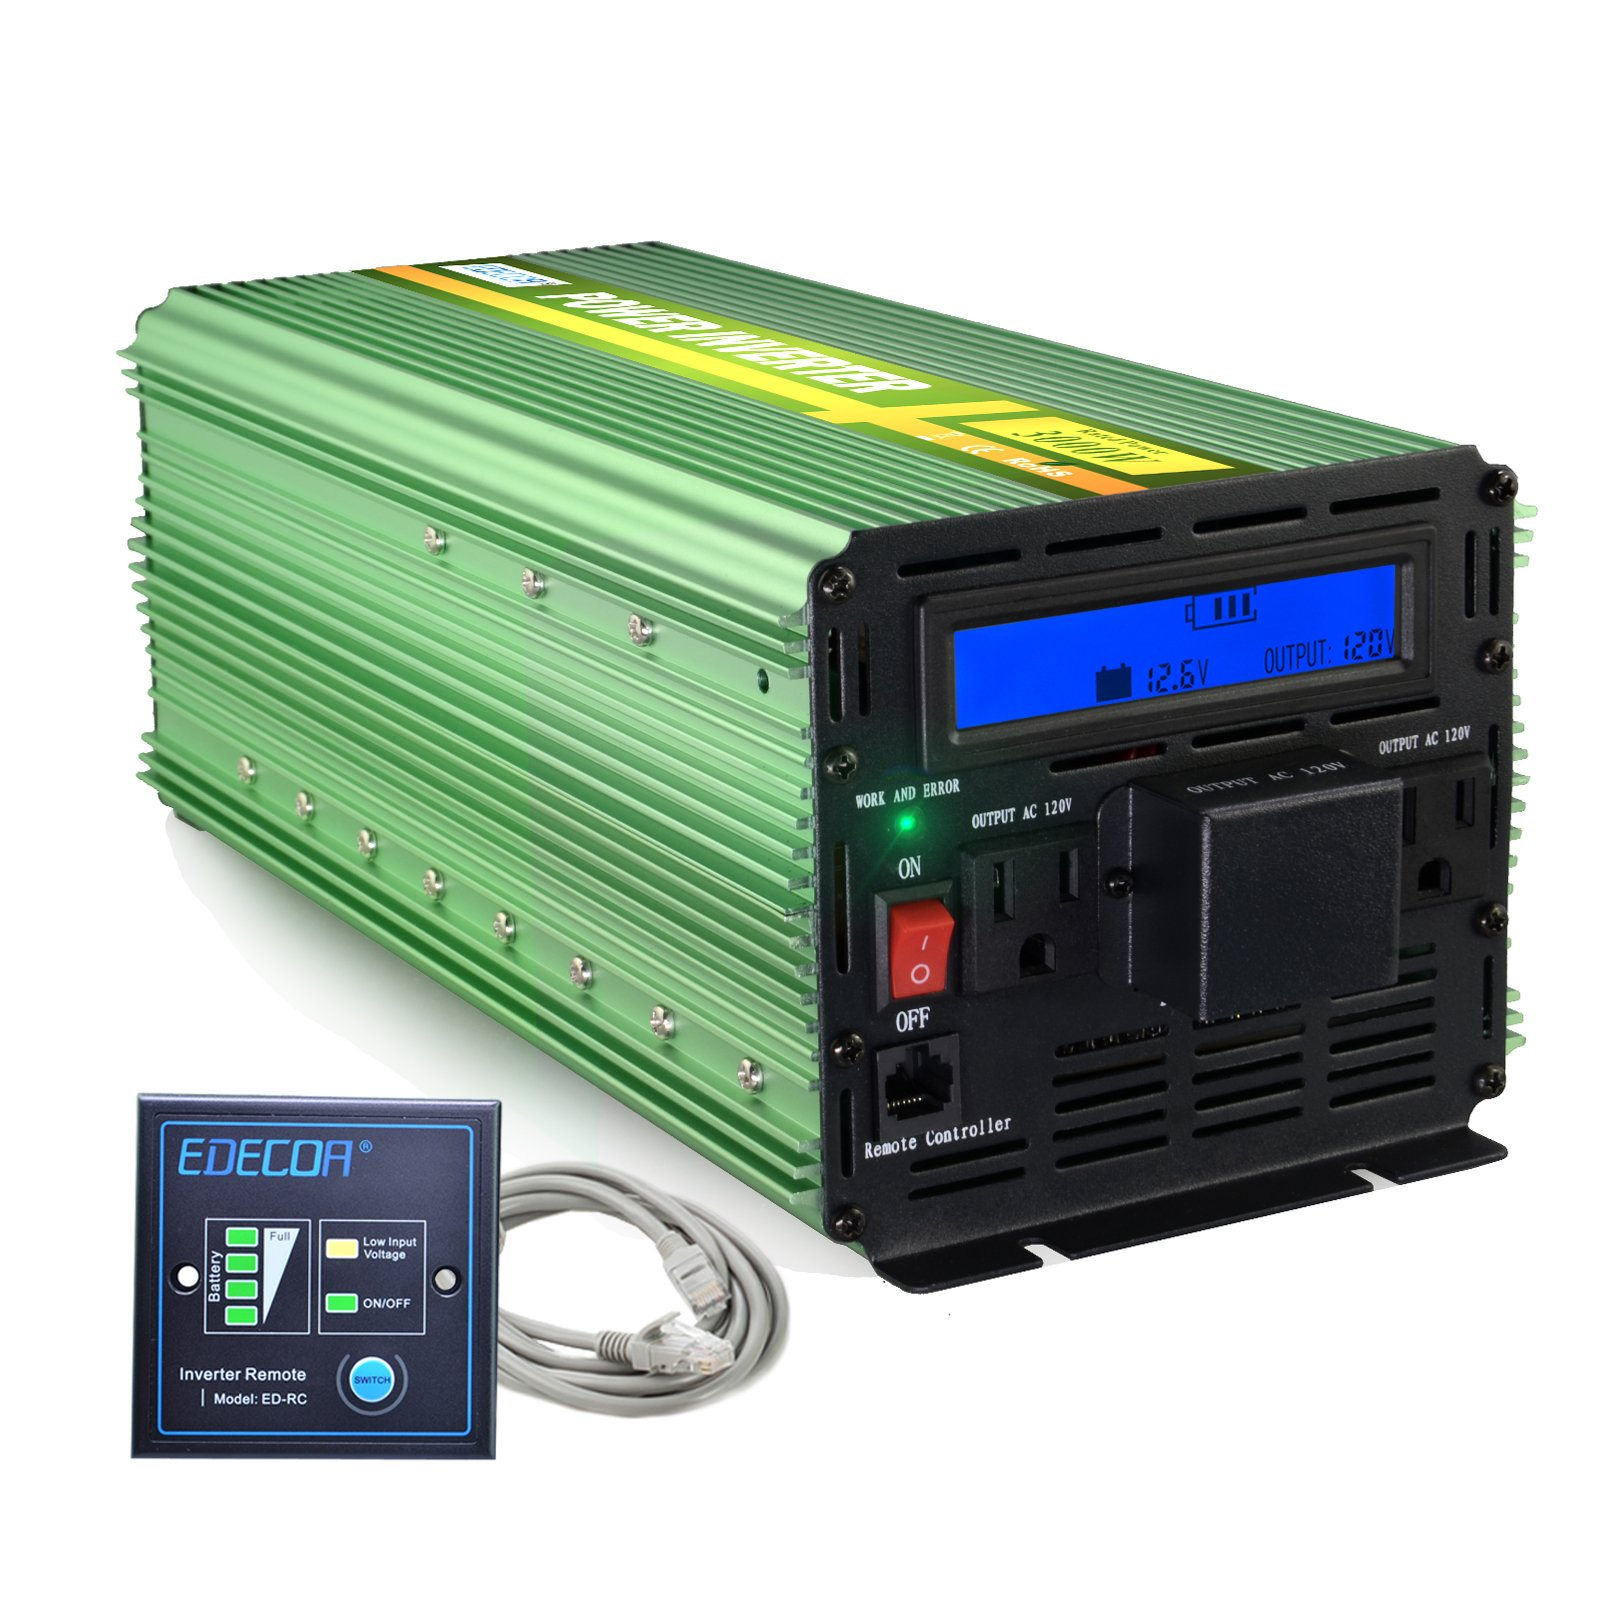 EDECOA 3000 Watts Power Inverter 12V DC to 120V AC with LCD Display and Remote Controller 2 US Outlets and Wiring Port